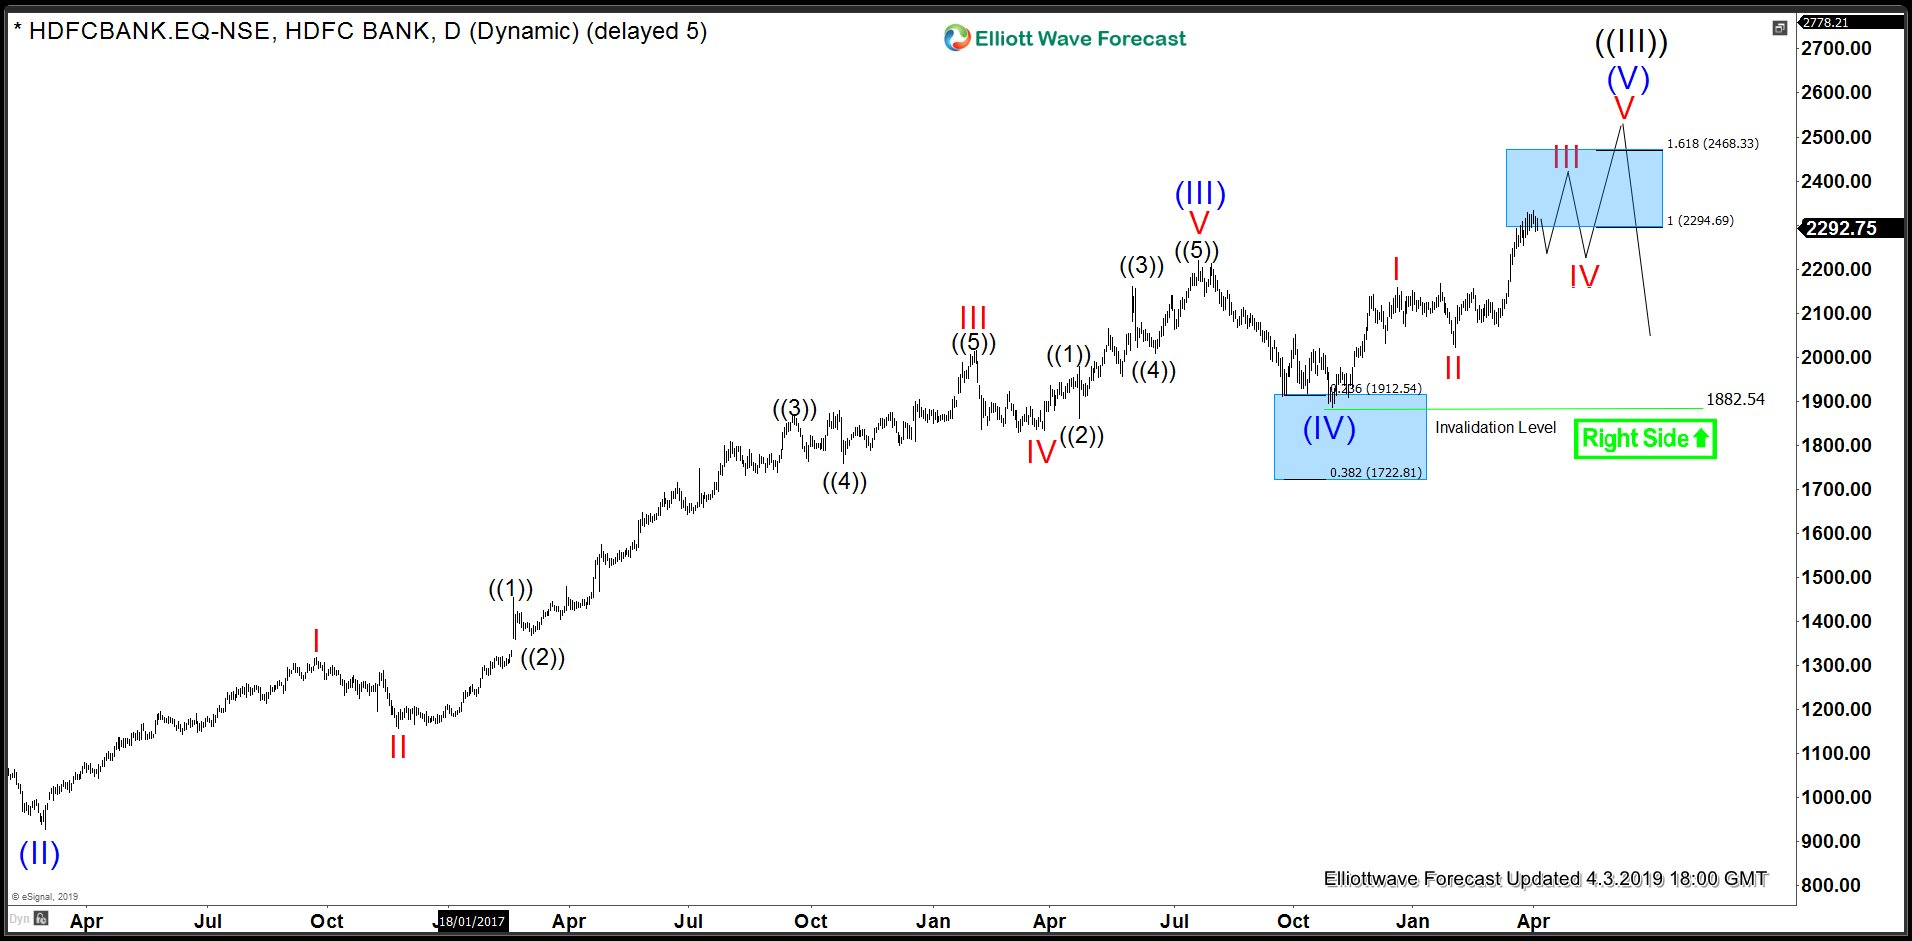 HDFC Bank Daily Elliott Wave Analysis 4.3.2019